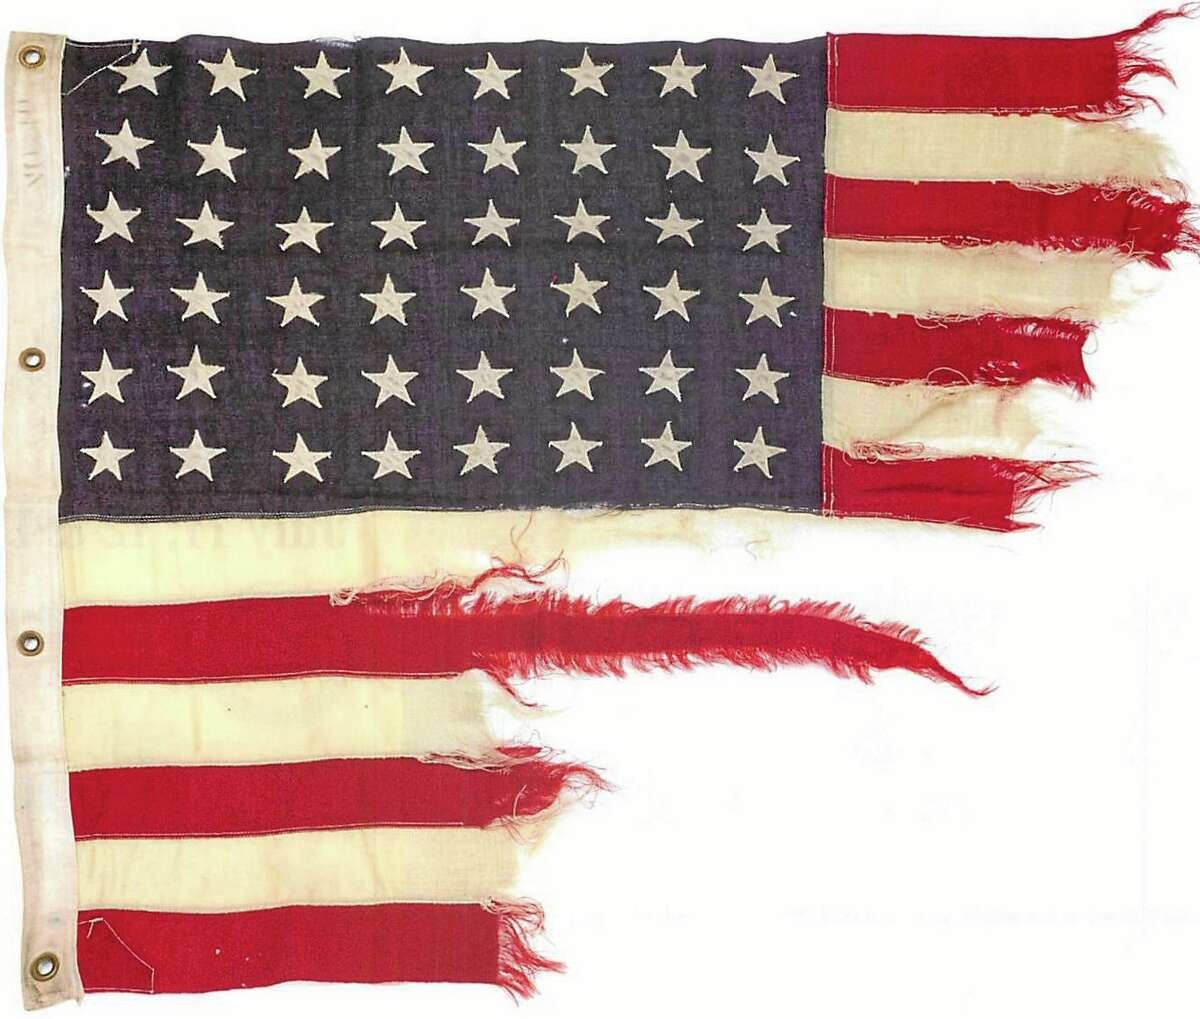 This photo provided by collector Rodney Hilton Brown shows a tattered 48-star American flag that flew aboard the U.S.-built LST 493 on D-Day that is being auctioned by Bonhams in New York on Thursday, June 5, 2014. The flag is among the hundreds of D-Day and other World War II artifacts being auctioned a day before the 70th anniversary of the history-changing invasion. The auction also features rare print-outs of the original series of hourly Dow Jones news bulletins with some of the first reports of the fighting on Franceís north coast on June 6, 1944. (AP Photo/Courtesy of Rodney Hilton Brown)